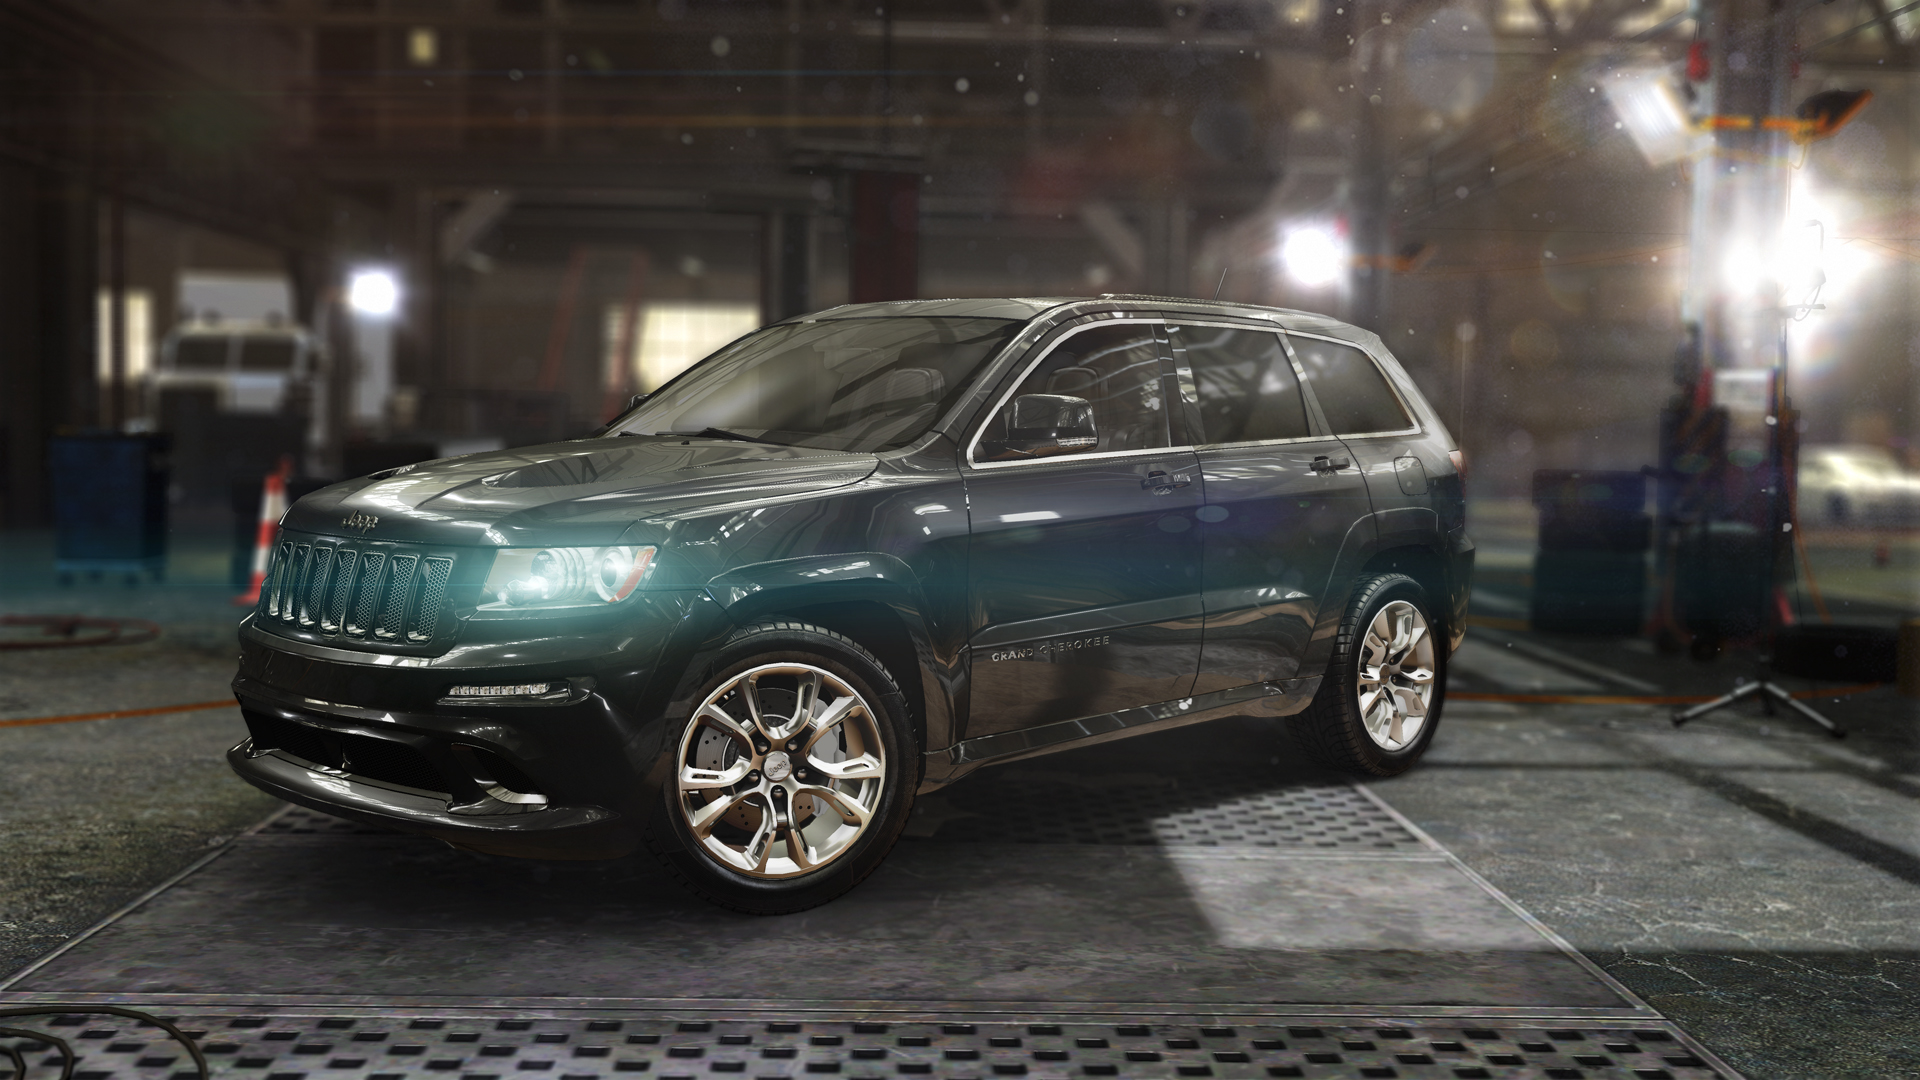 Jeep Grand Cherokee Srt10 >> Jeep Grand Cherokee SRT-8 (2012) | Ubisoft's The Crew Wiki | Fandom powered by Wikia